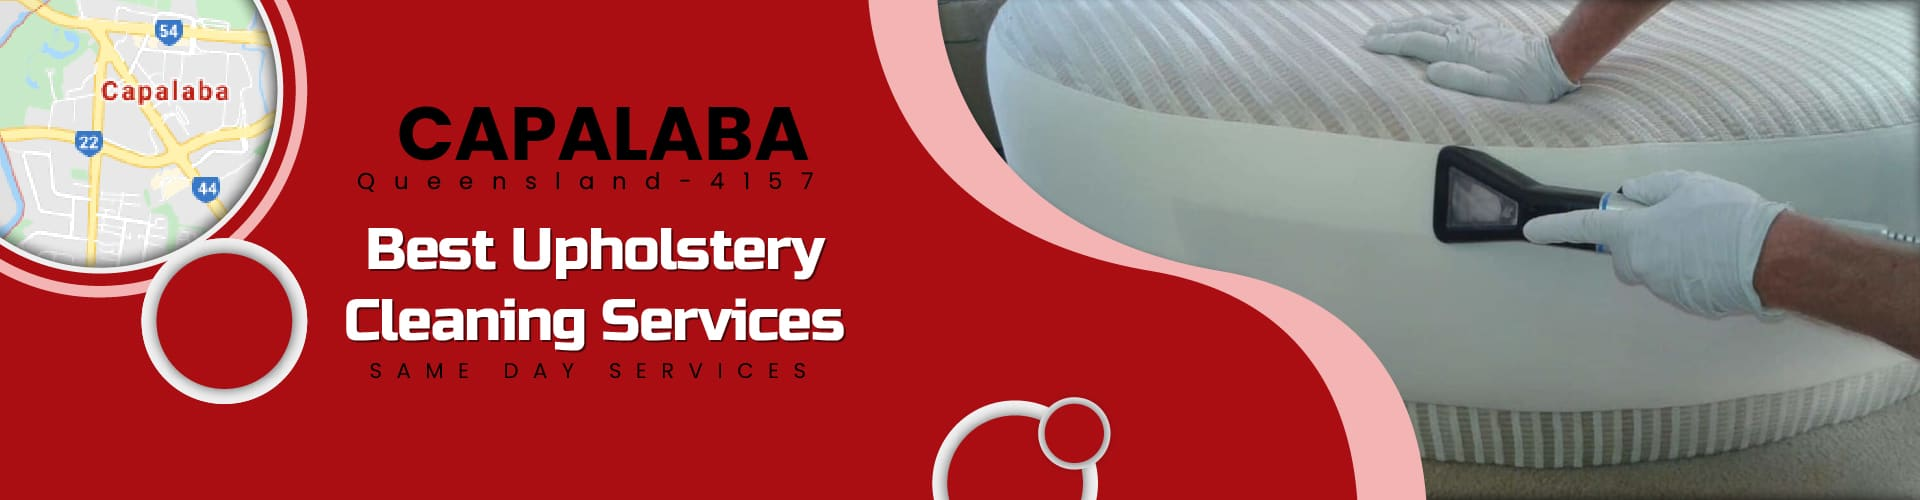 Upholstery Cleaning Capalaba